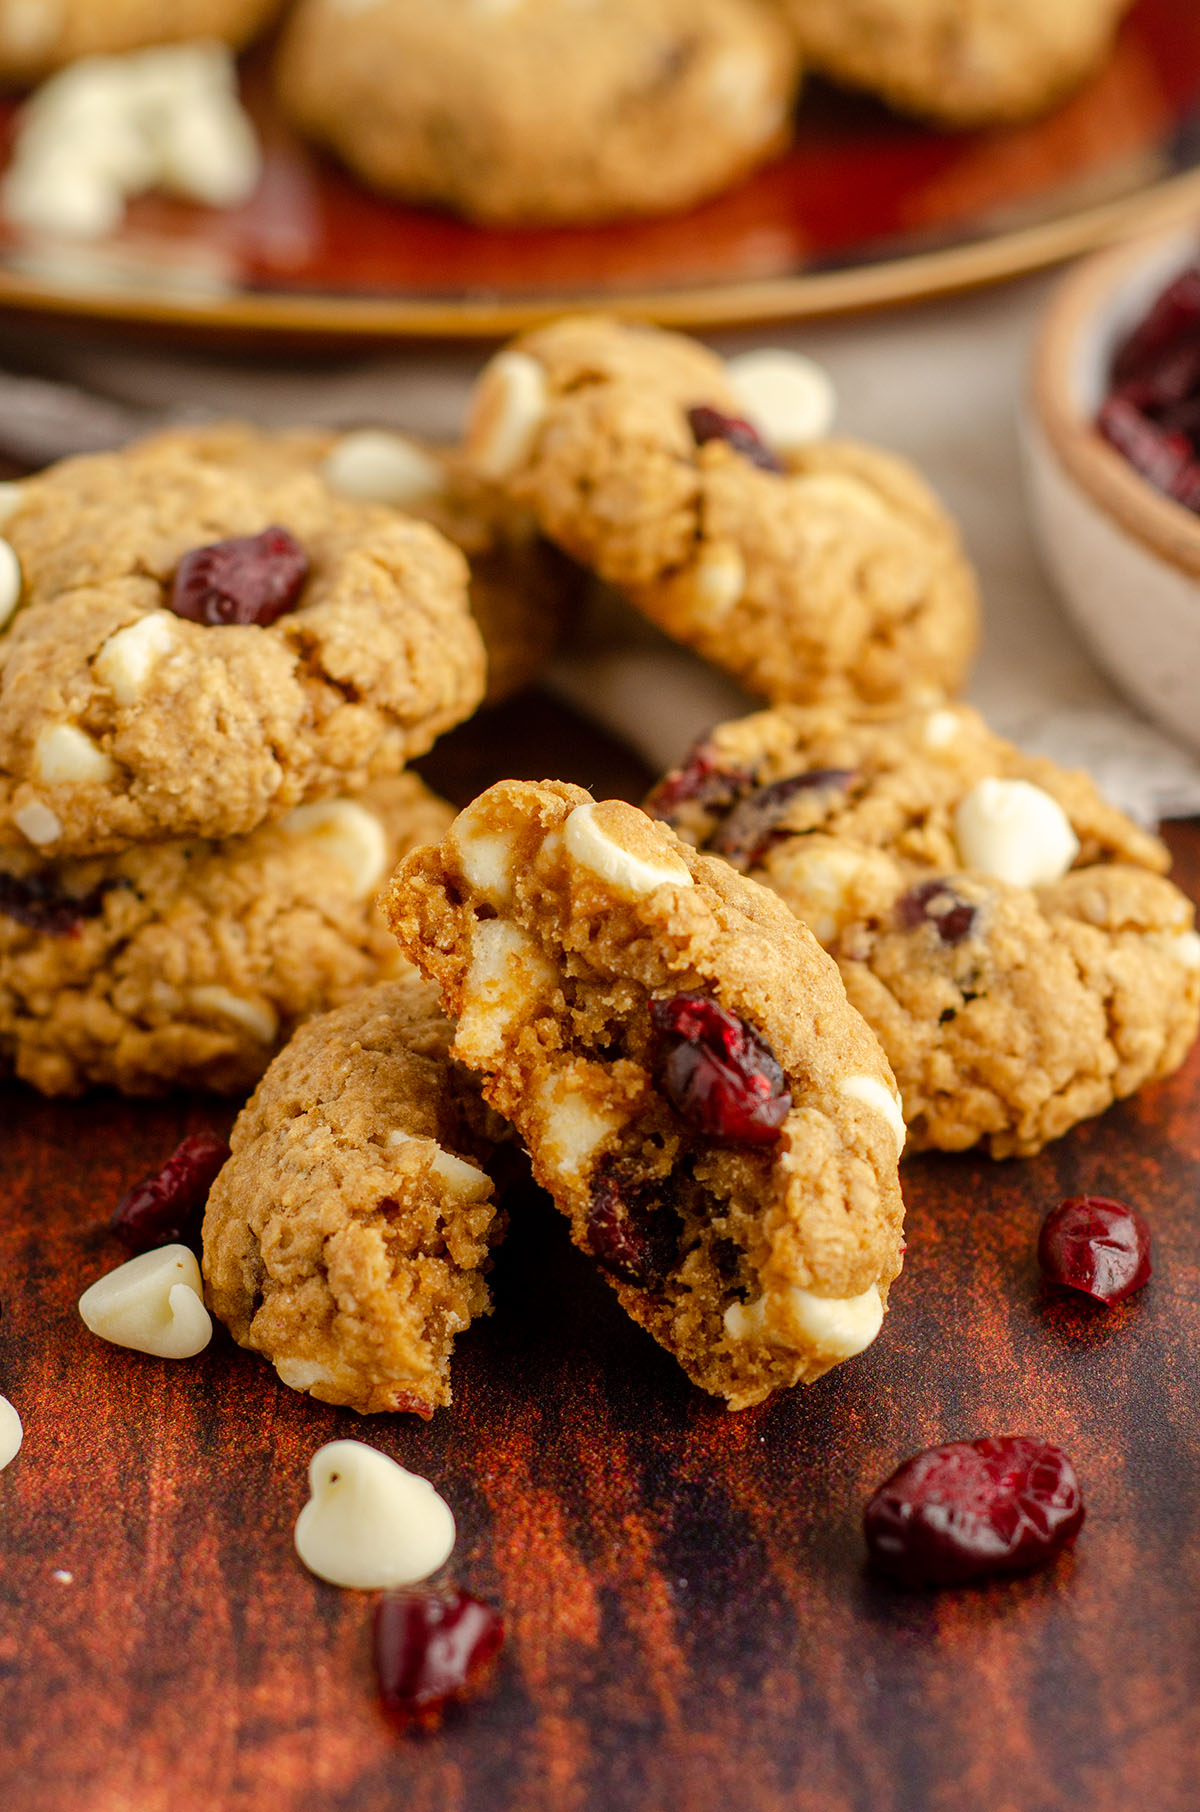 white chocolate cranberry oatmeal cookie broken apart to see the inside